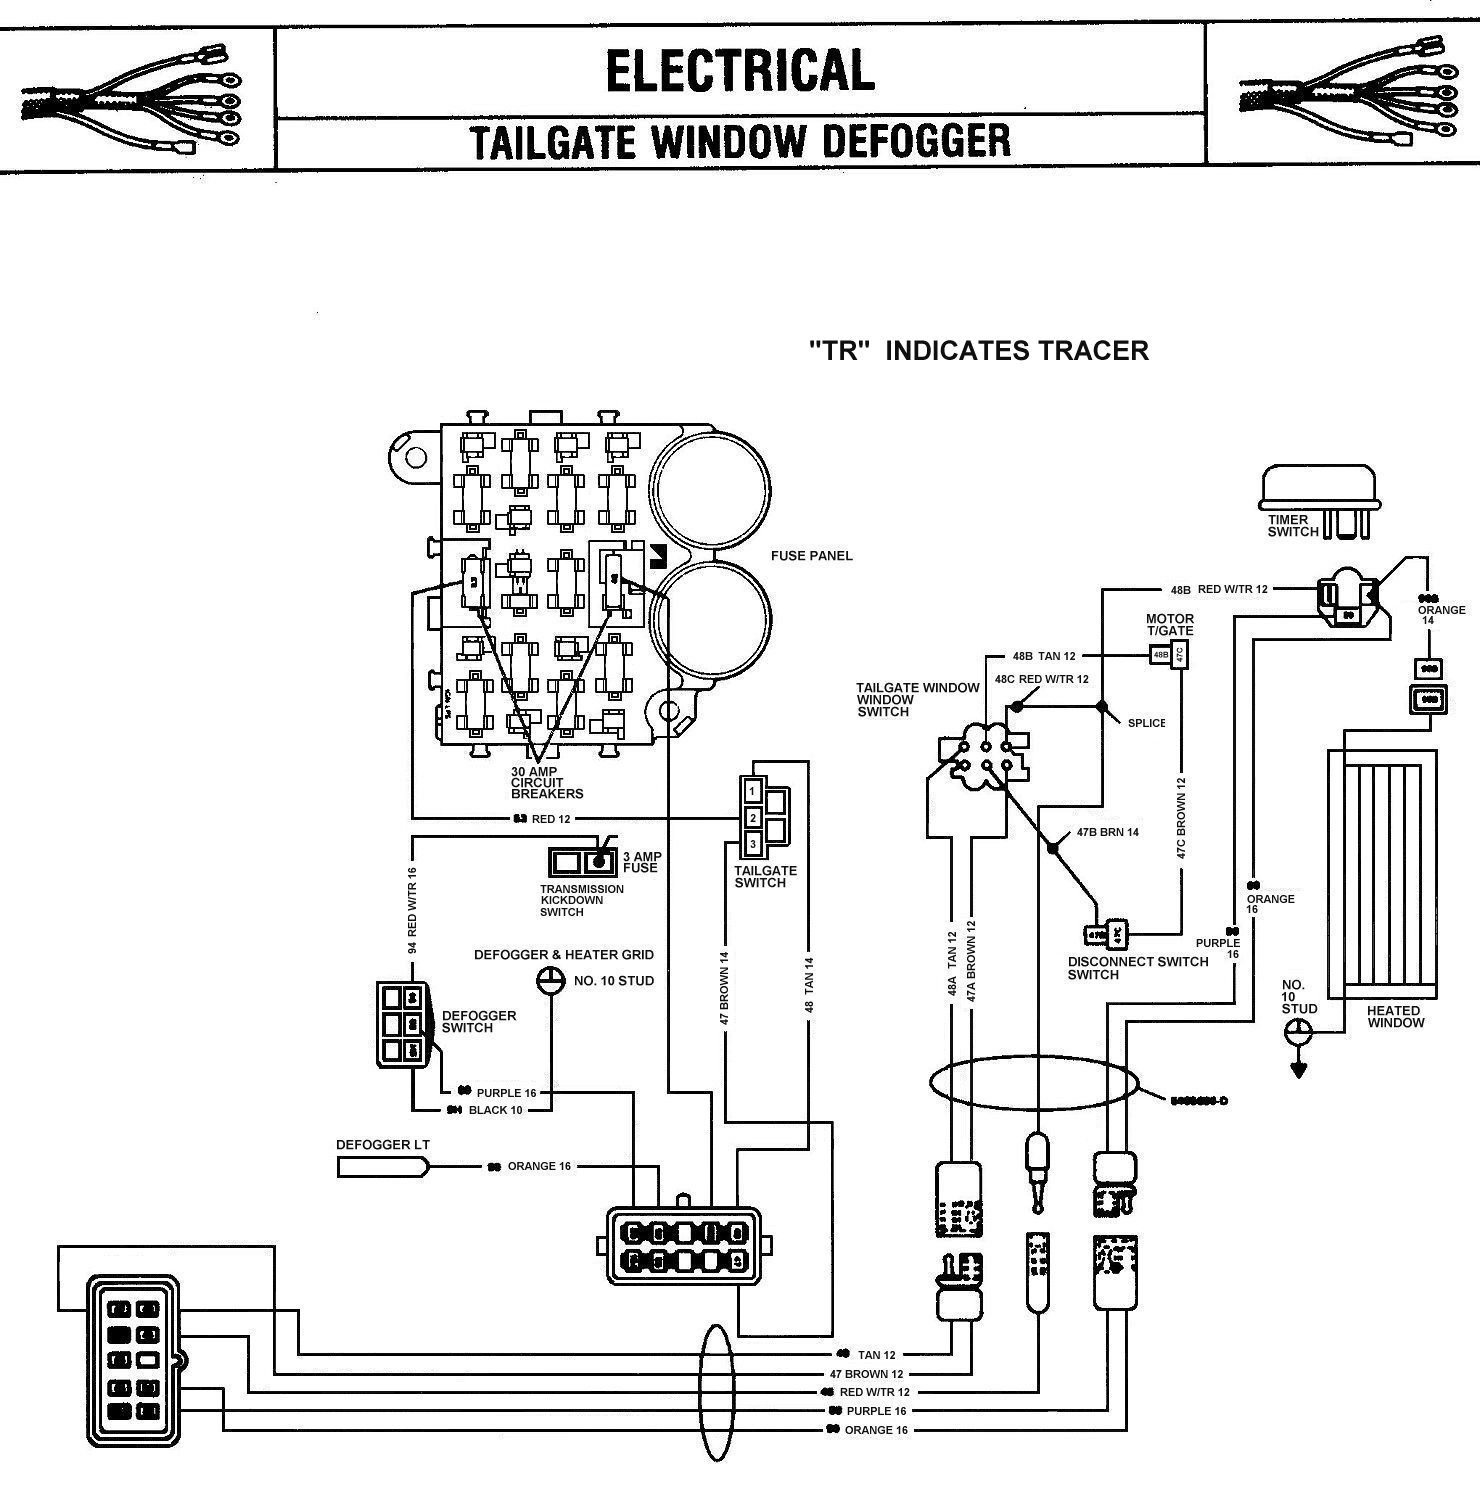 jeep wiper switch wiring diagram 1985 basic wiring diagram u2022 rh rnetcomputer co Window Switches 1967 GMC GM Power Window Switch